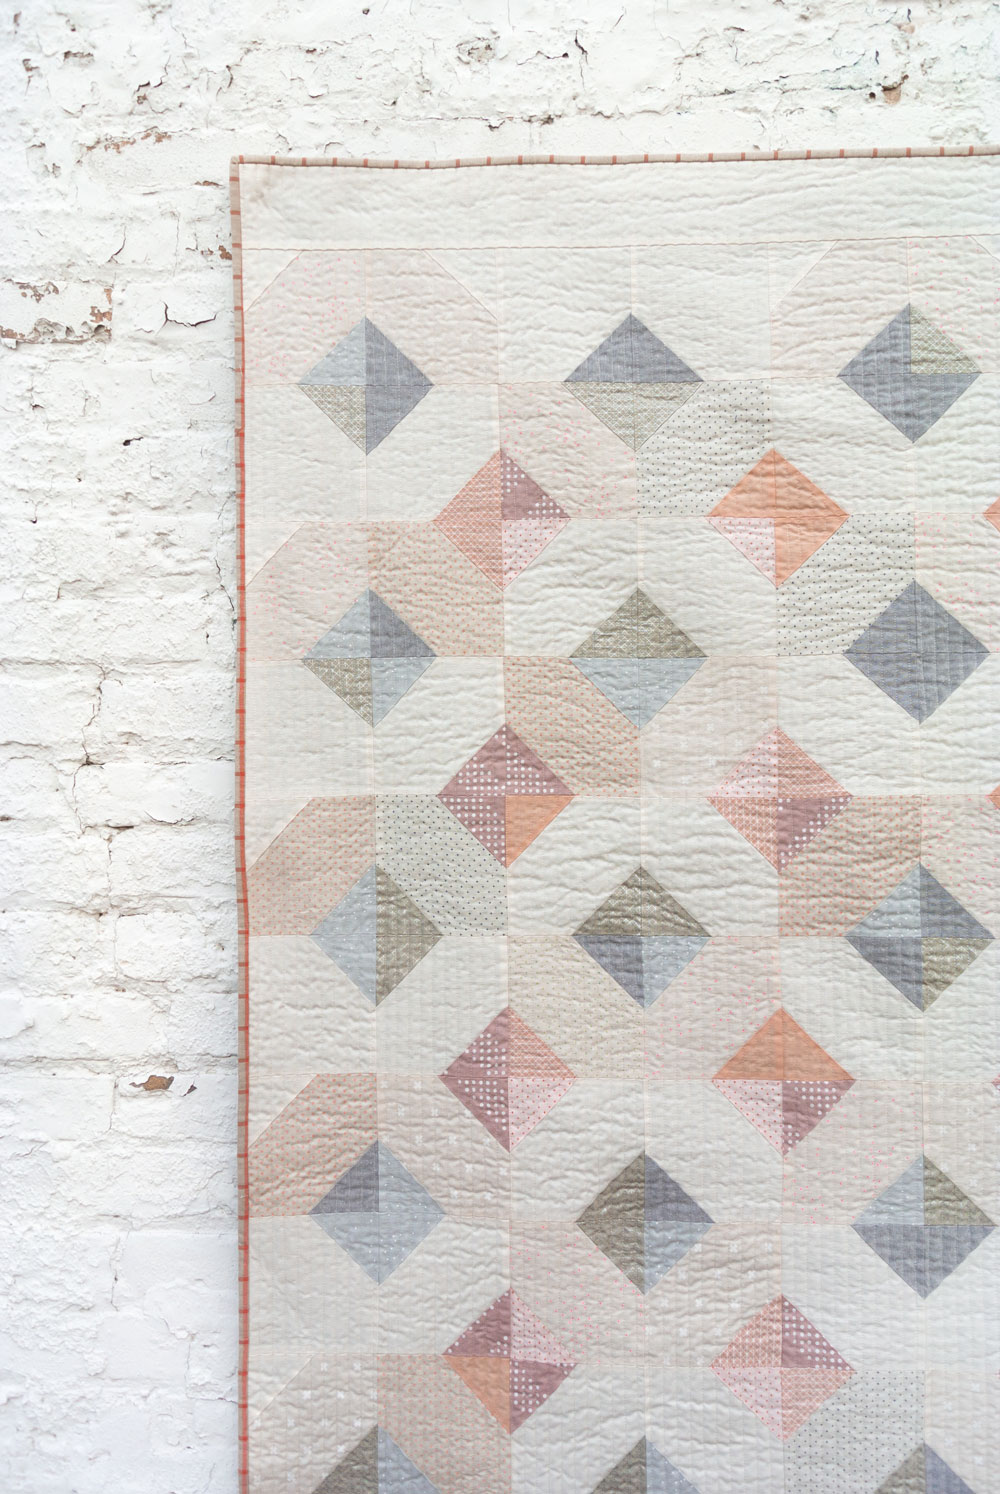 The Glitter & Glow quilt pattern comes in king, queen/full, twin, throw and baby quilt sizes. It's a simple beginner-friendly quilt pattern that is also scrap and fat quarter friendly!